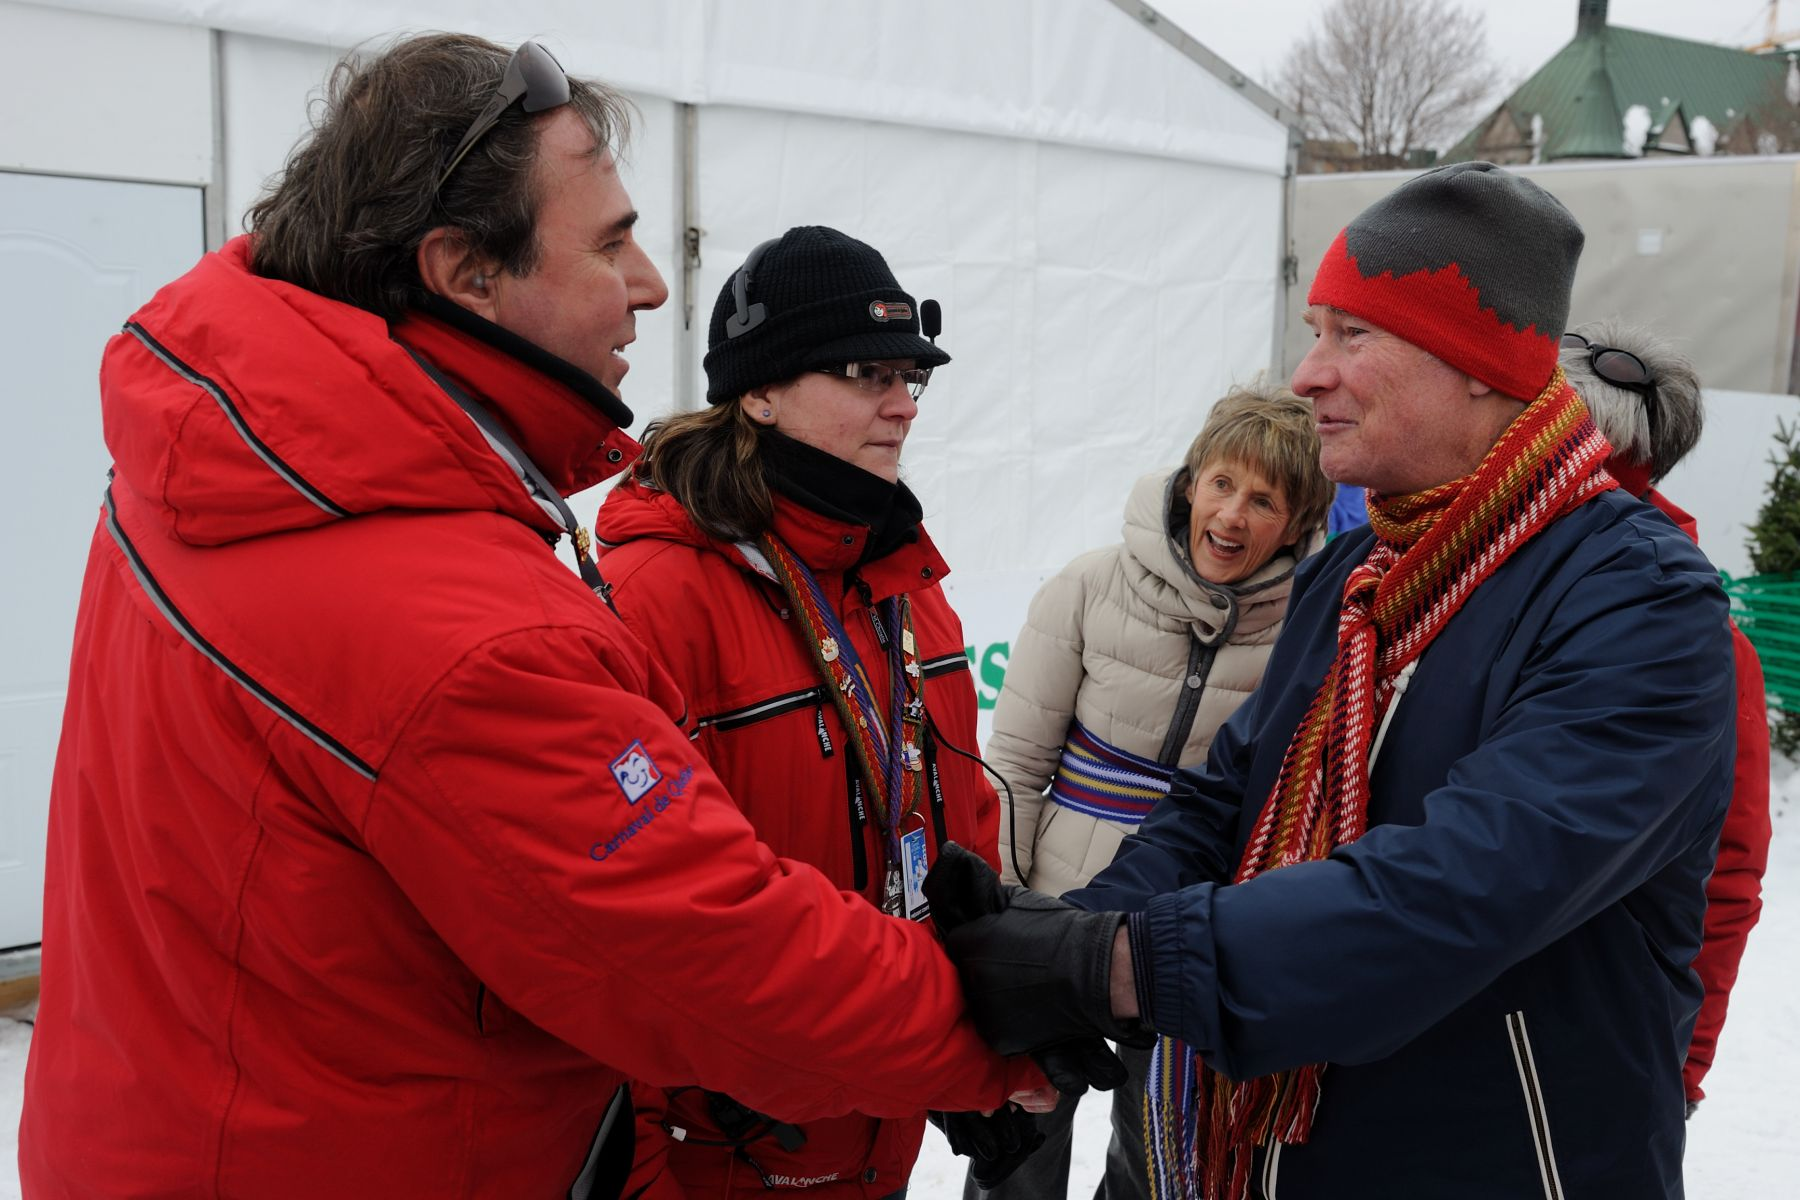 During his visit of the site, the Governor General met with volunteers who are helping to keep the 57th edition of this major winter festival running smoothly.